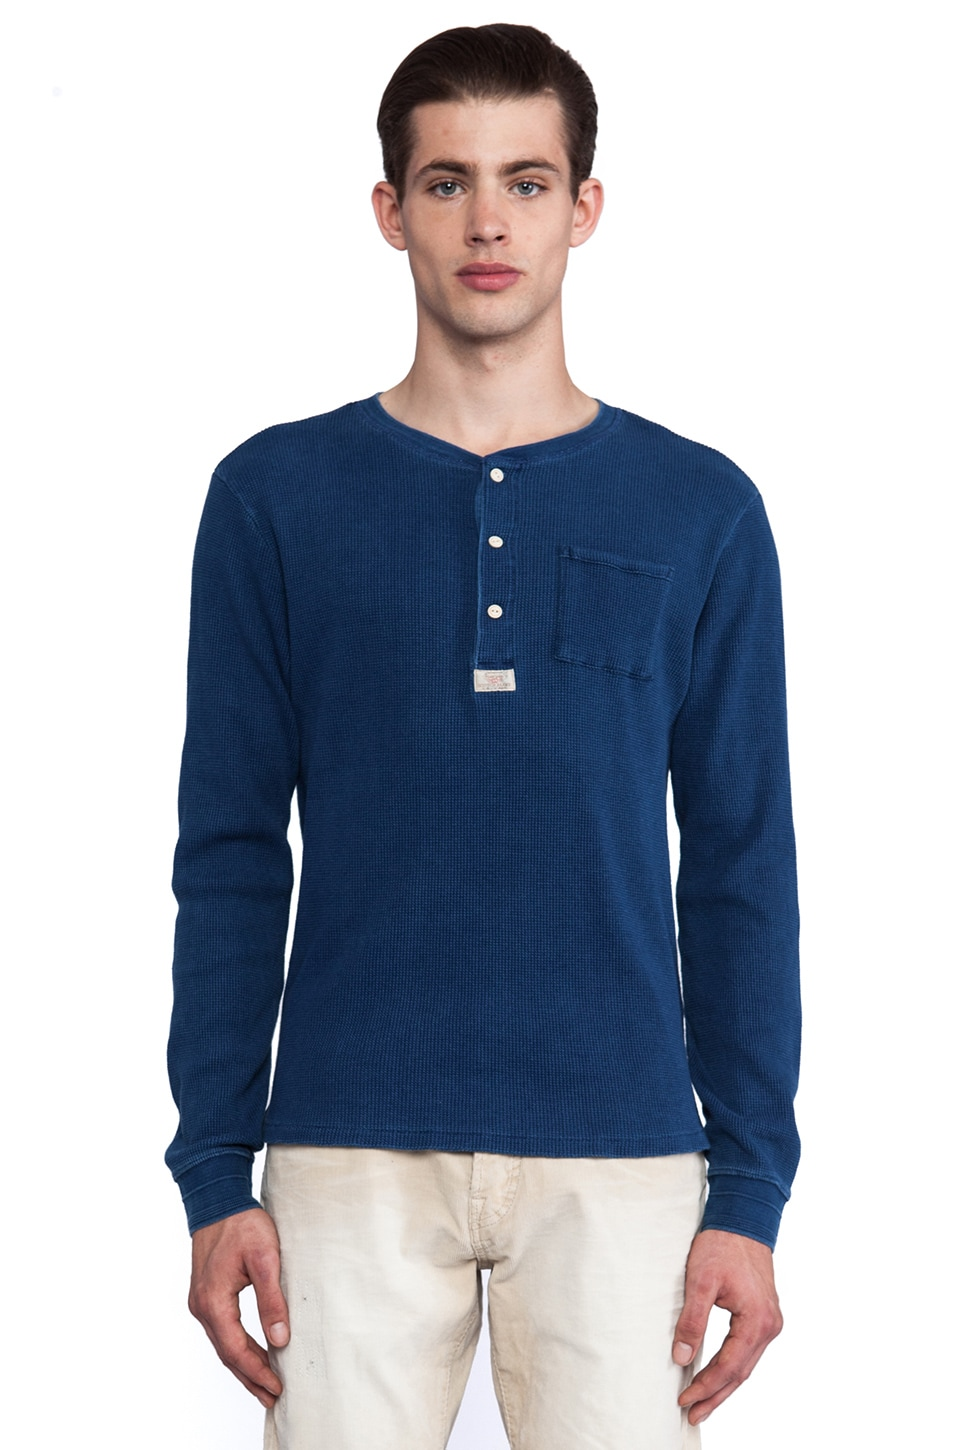 Scotch & Soda Long Sleeve Waffle Structured Granddad w/ 3D Ribs in Washed Indigo